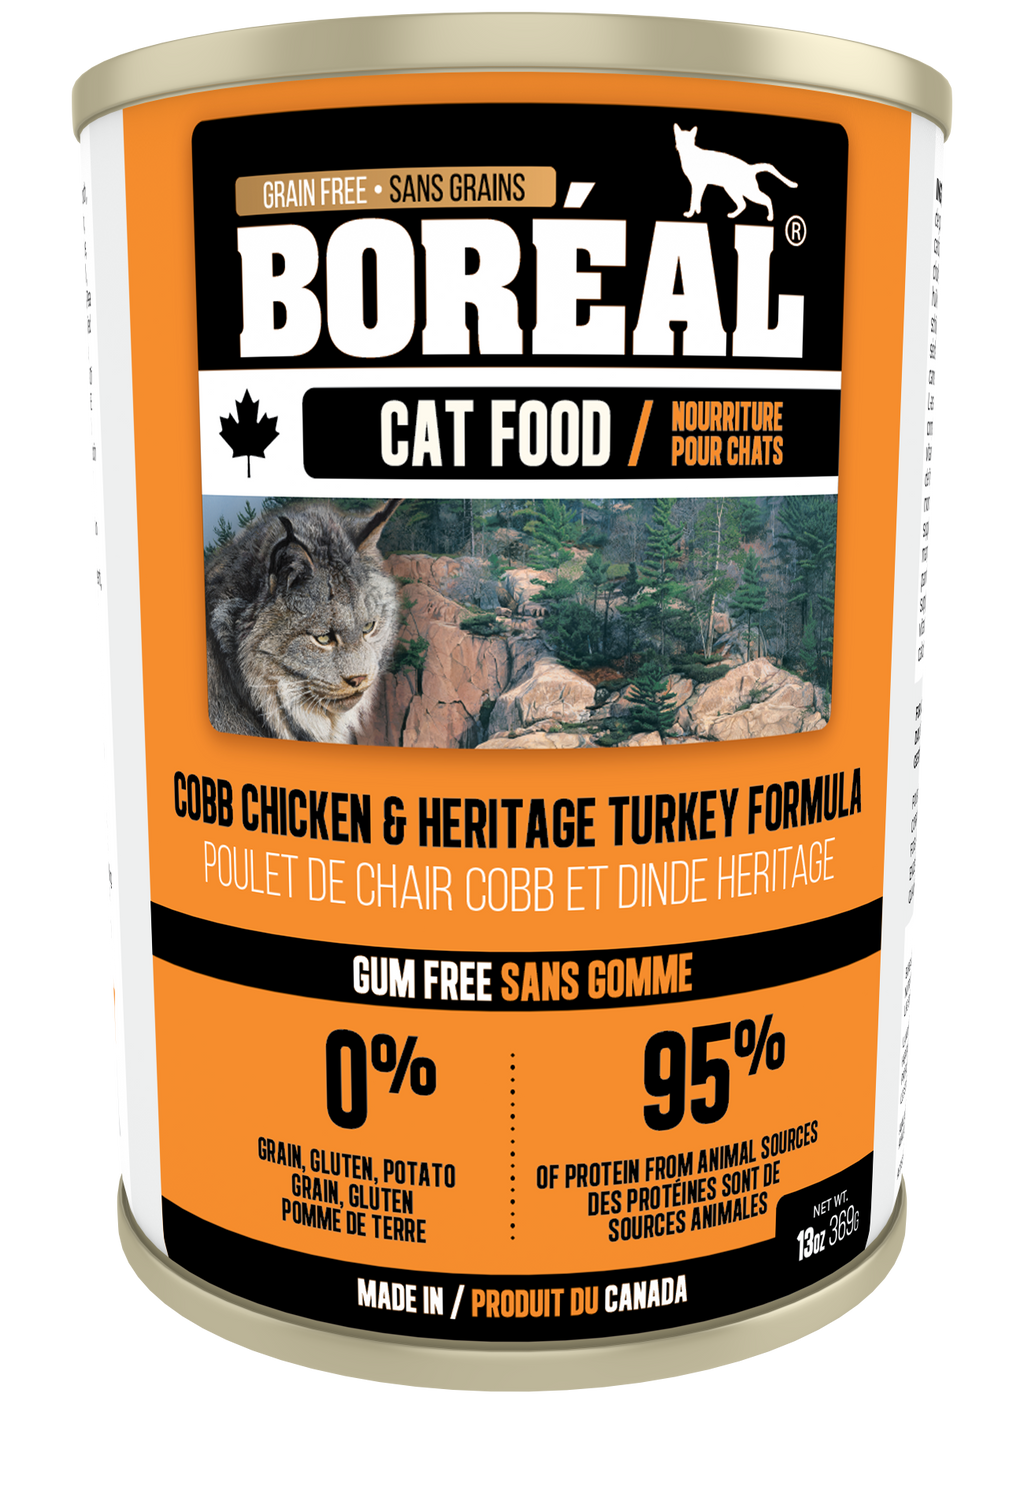 boreal wet cat food heritage turkey